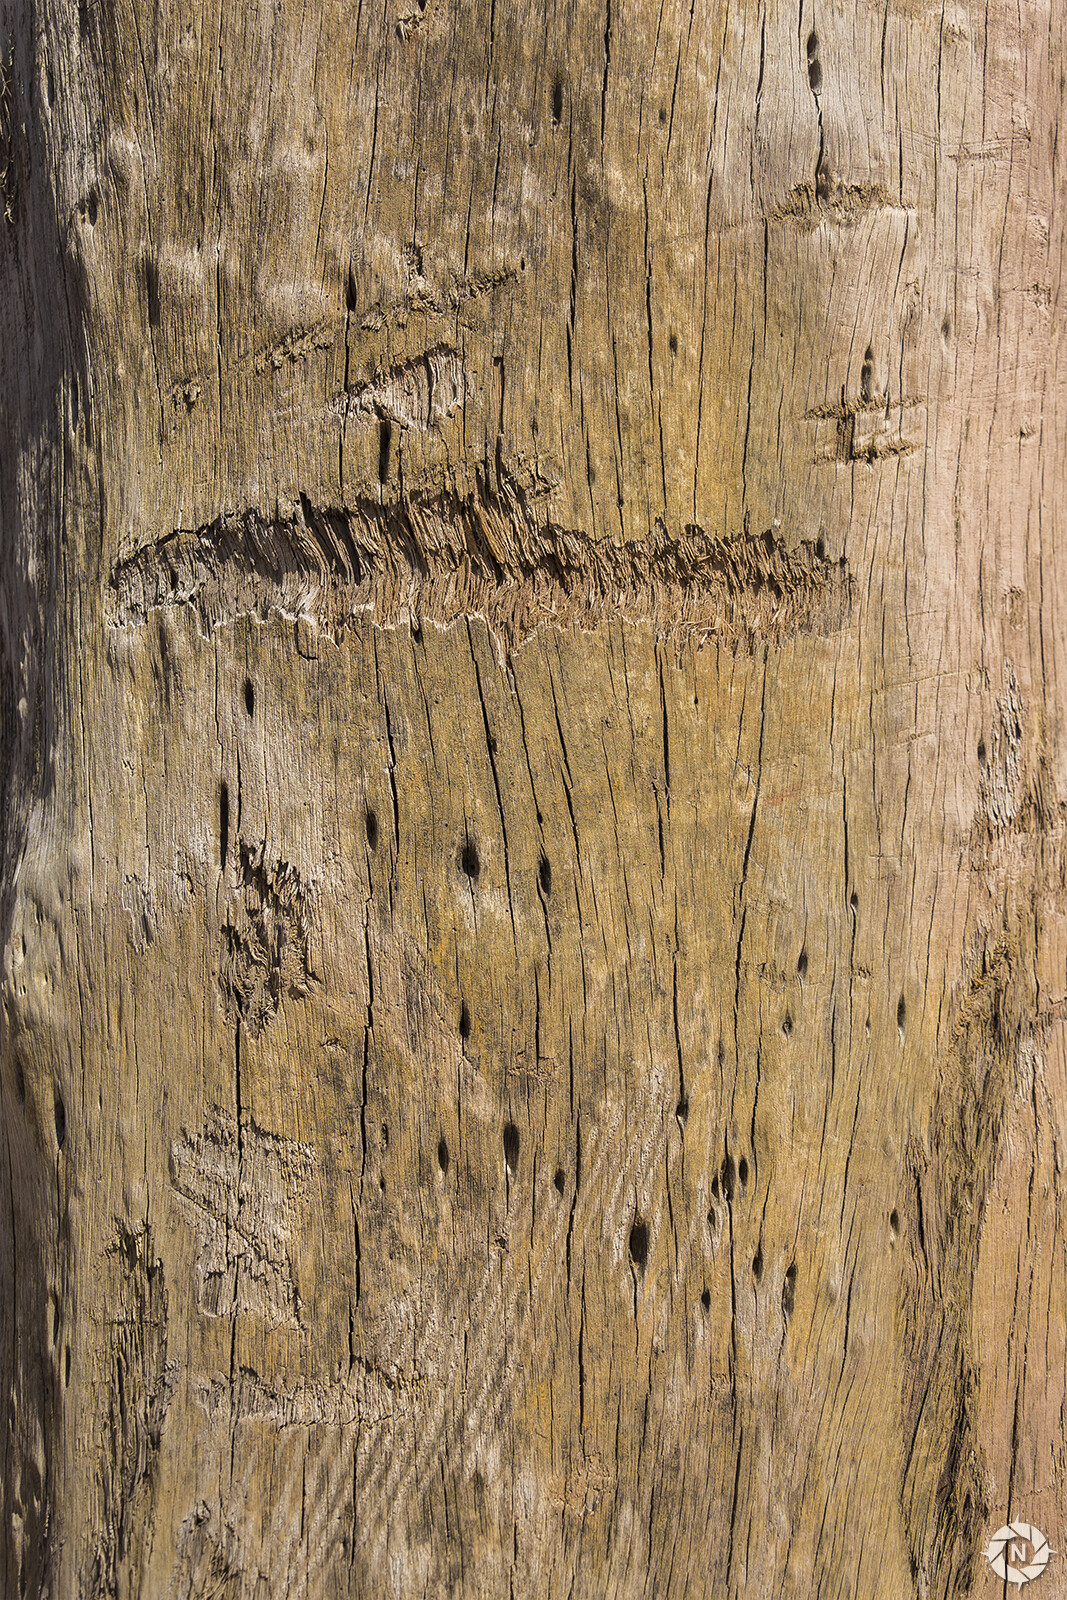 From the Texture Photo Pack: Tree Barks Volume 3  https://www.artstation.com/a/165833